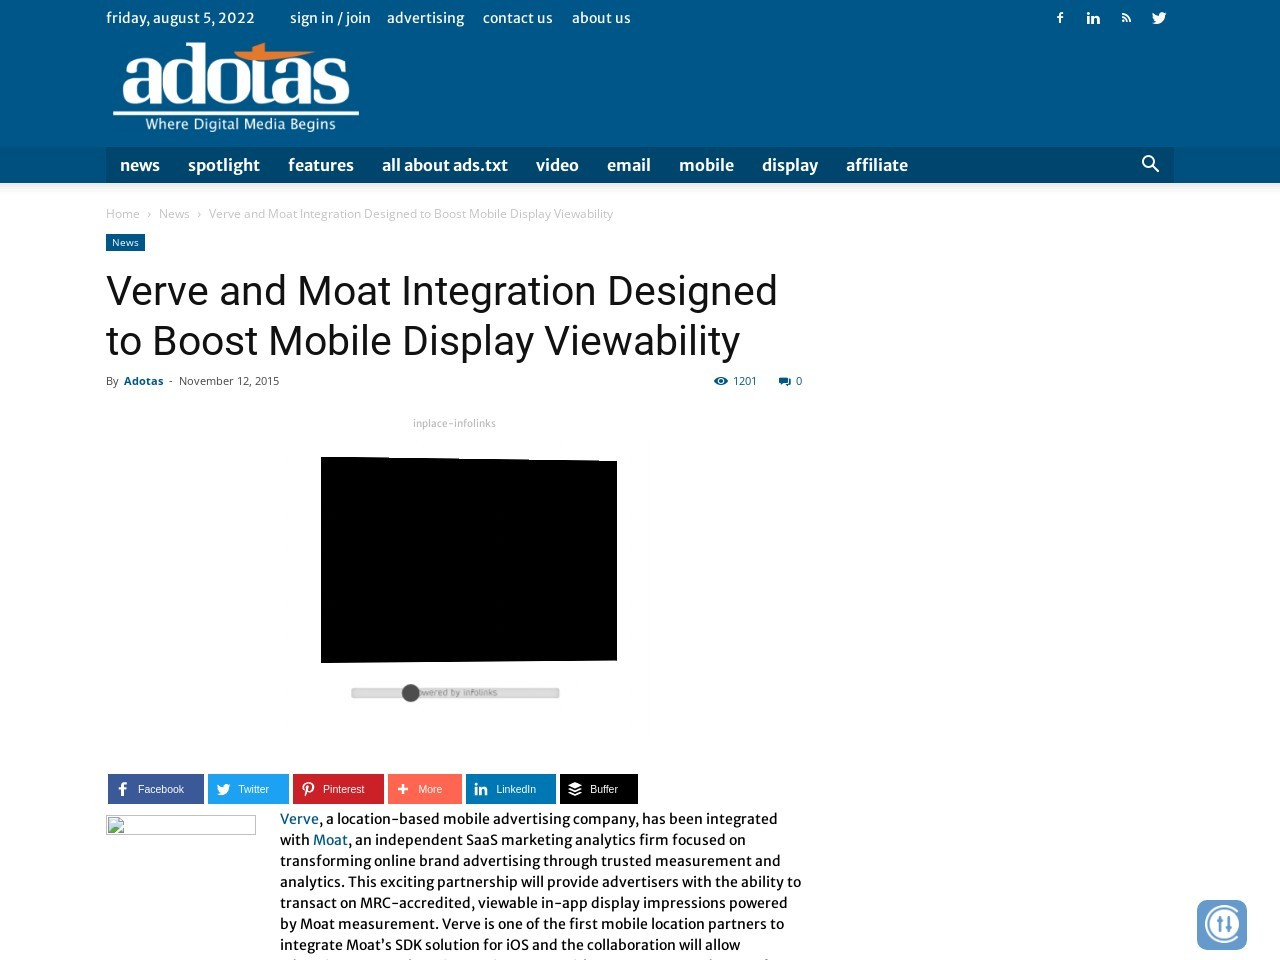 Verve and Moat Integration Designed to Boost Mobile Display Viewability